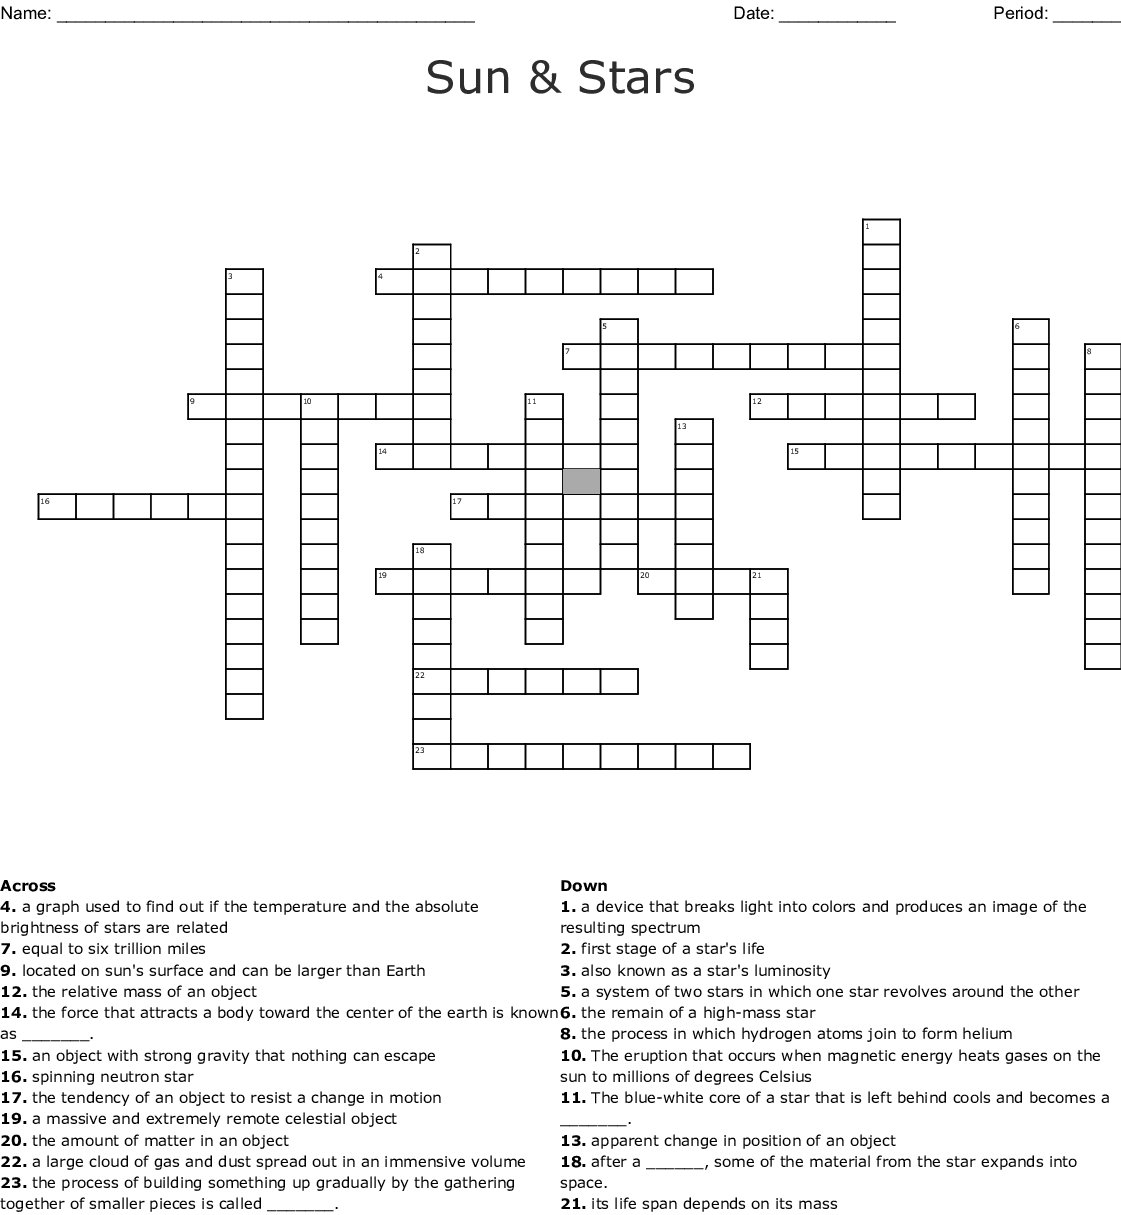 Sun & Stars Crossword - Wordmint - Printable Crosswords The Sun